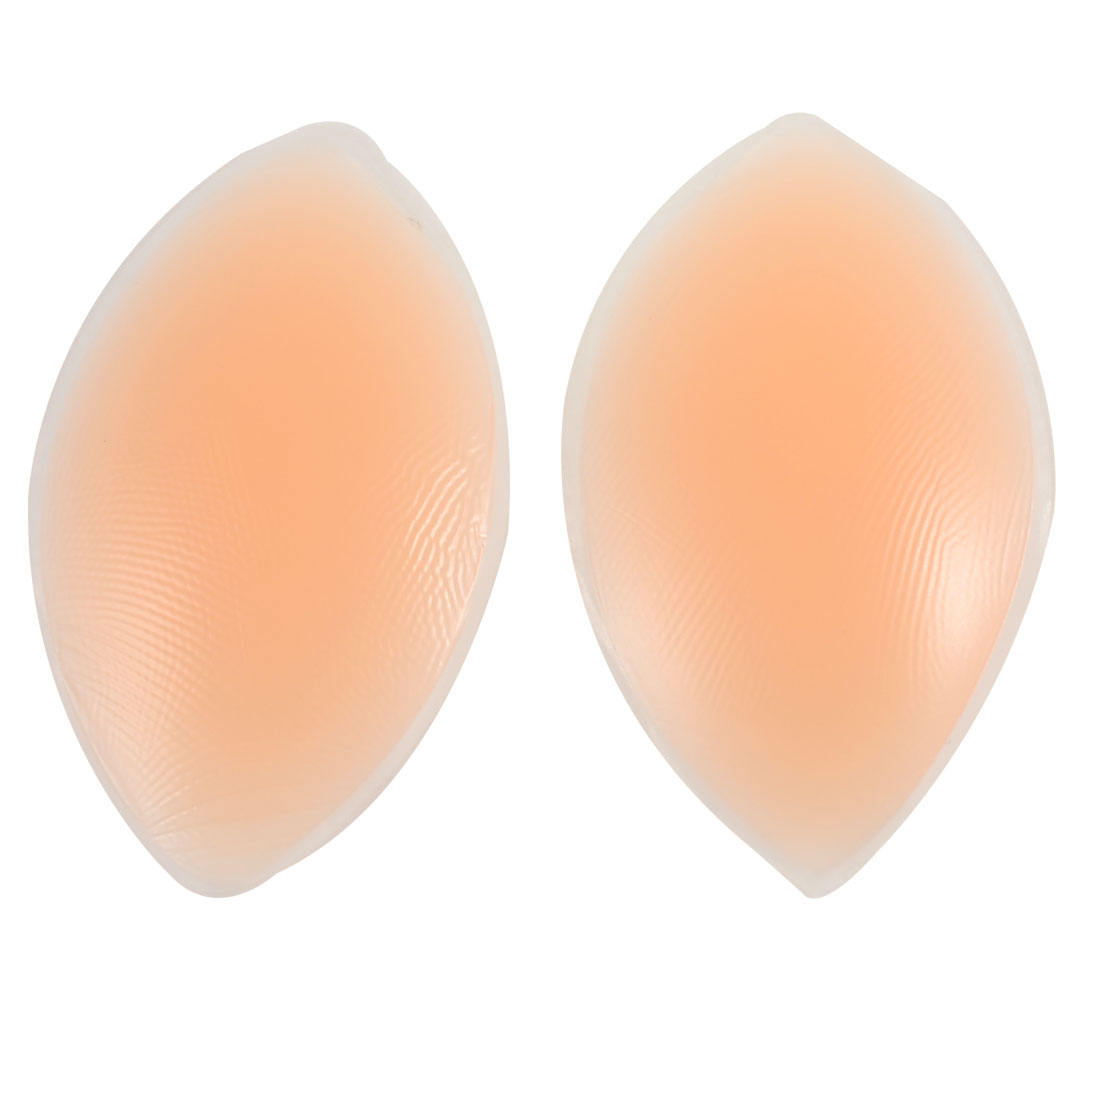 Light Orange Olive Shape Soft Silicone Breast Enhancer Pads 2 Pcs